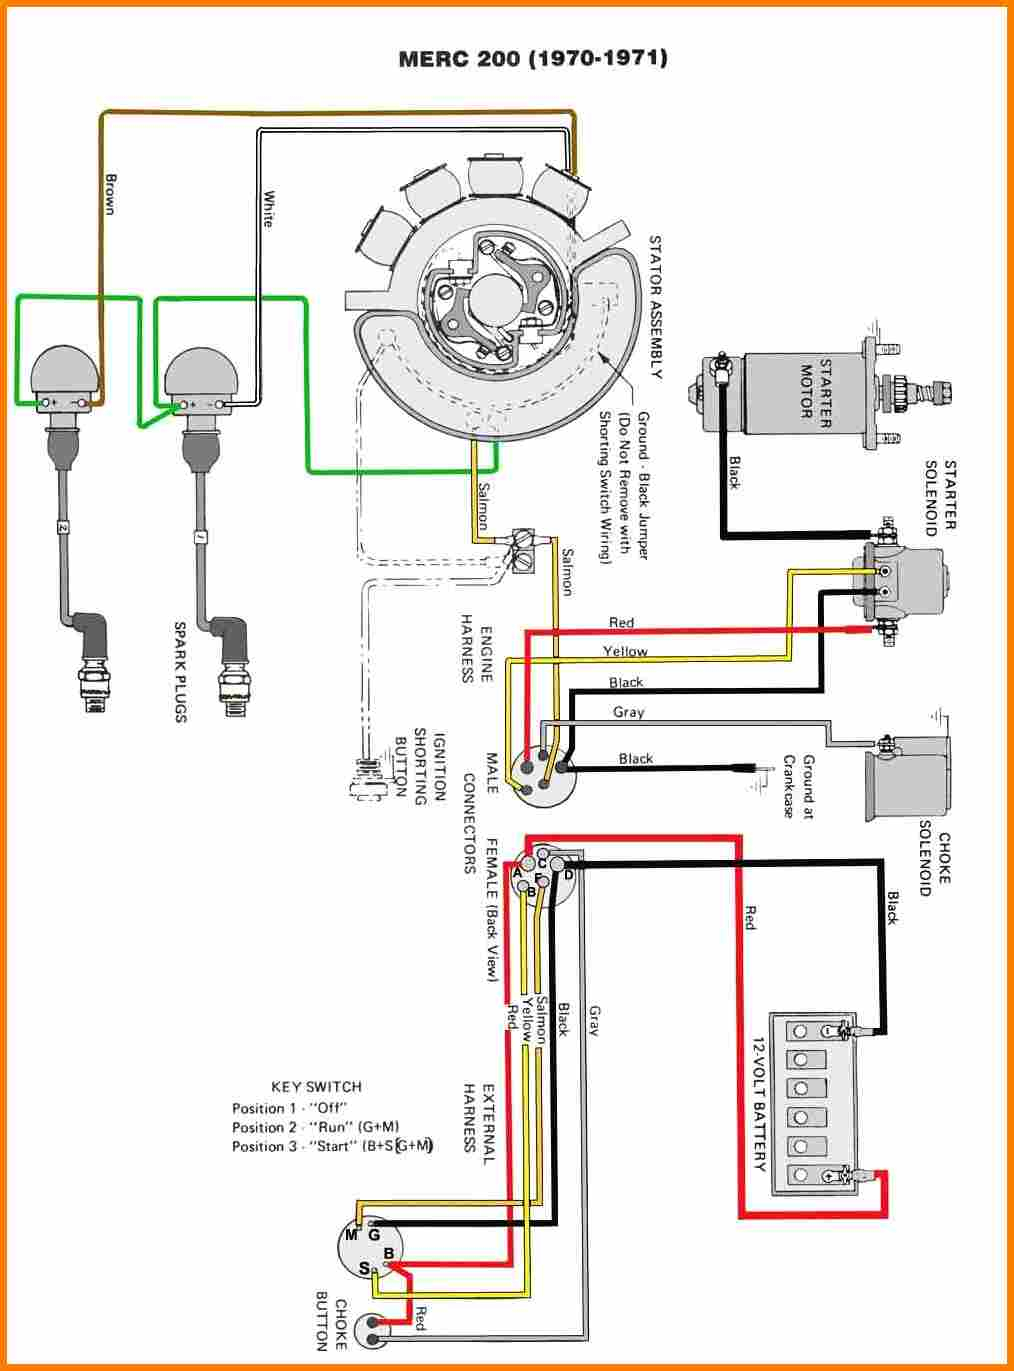 Yamaha Qt50 Wiring Diagram - wiring diagram diode-while1 -  diode-while1.labottegadisilvia.it diode-while1.labottegadisilvia.it